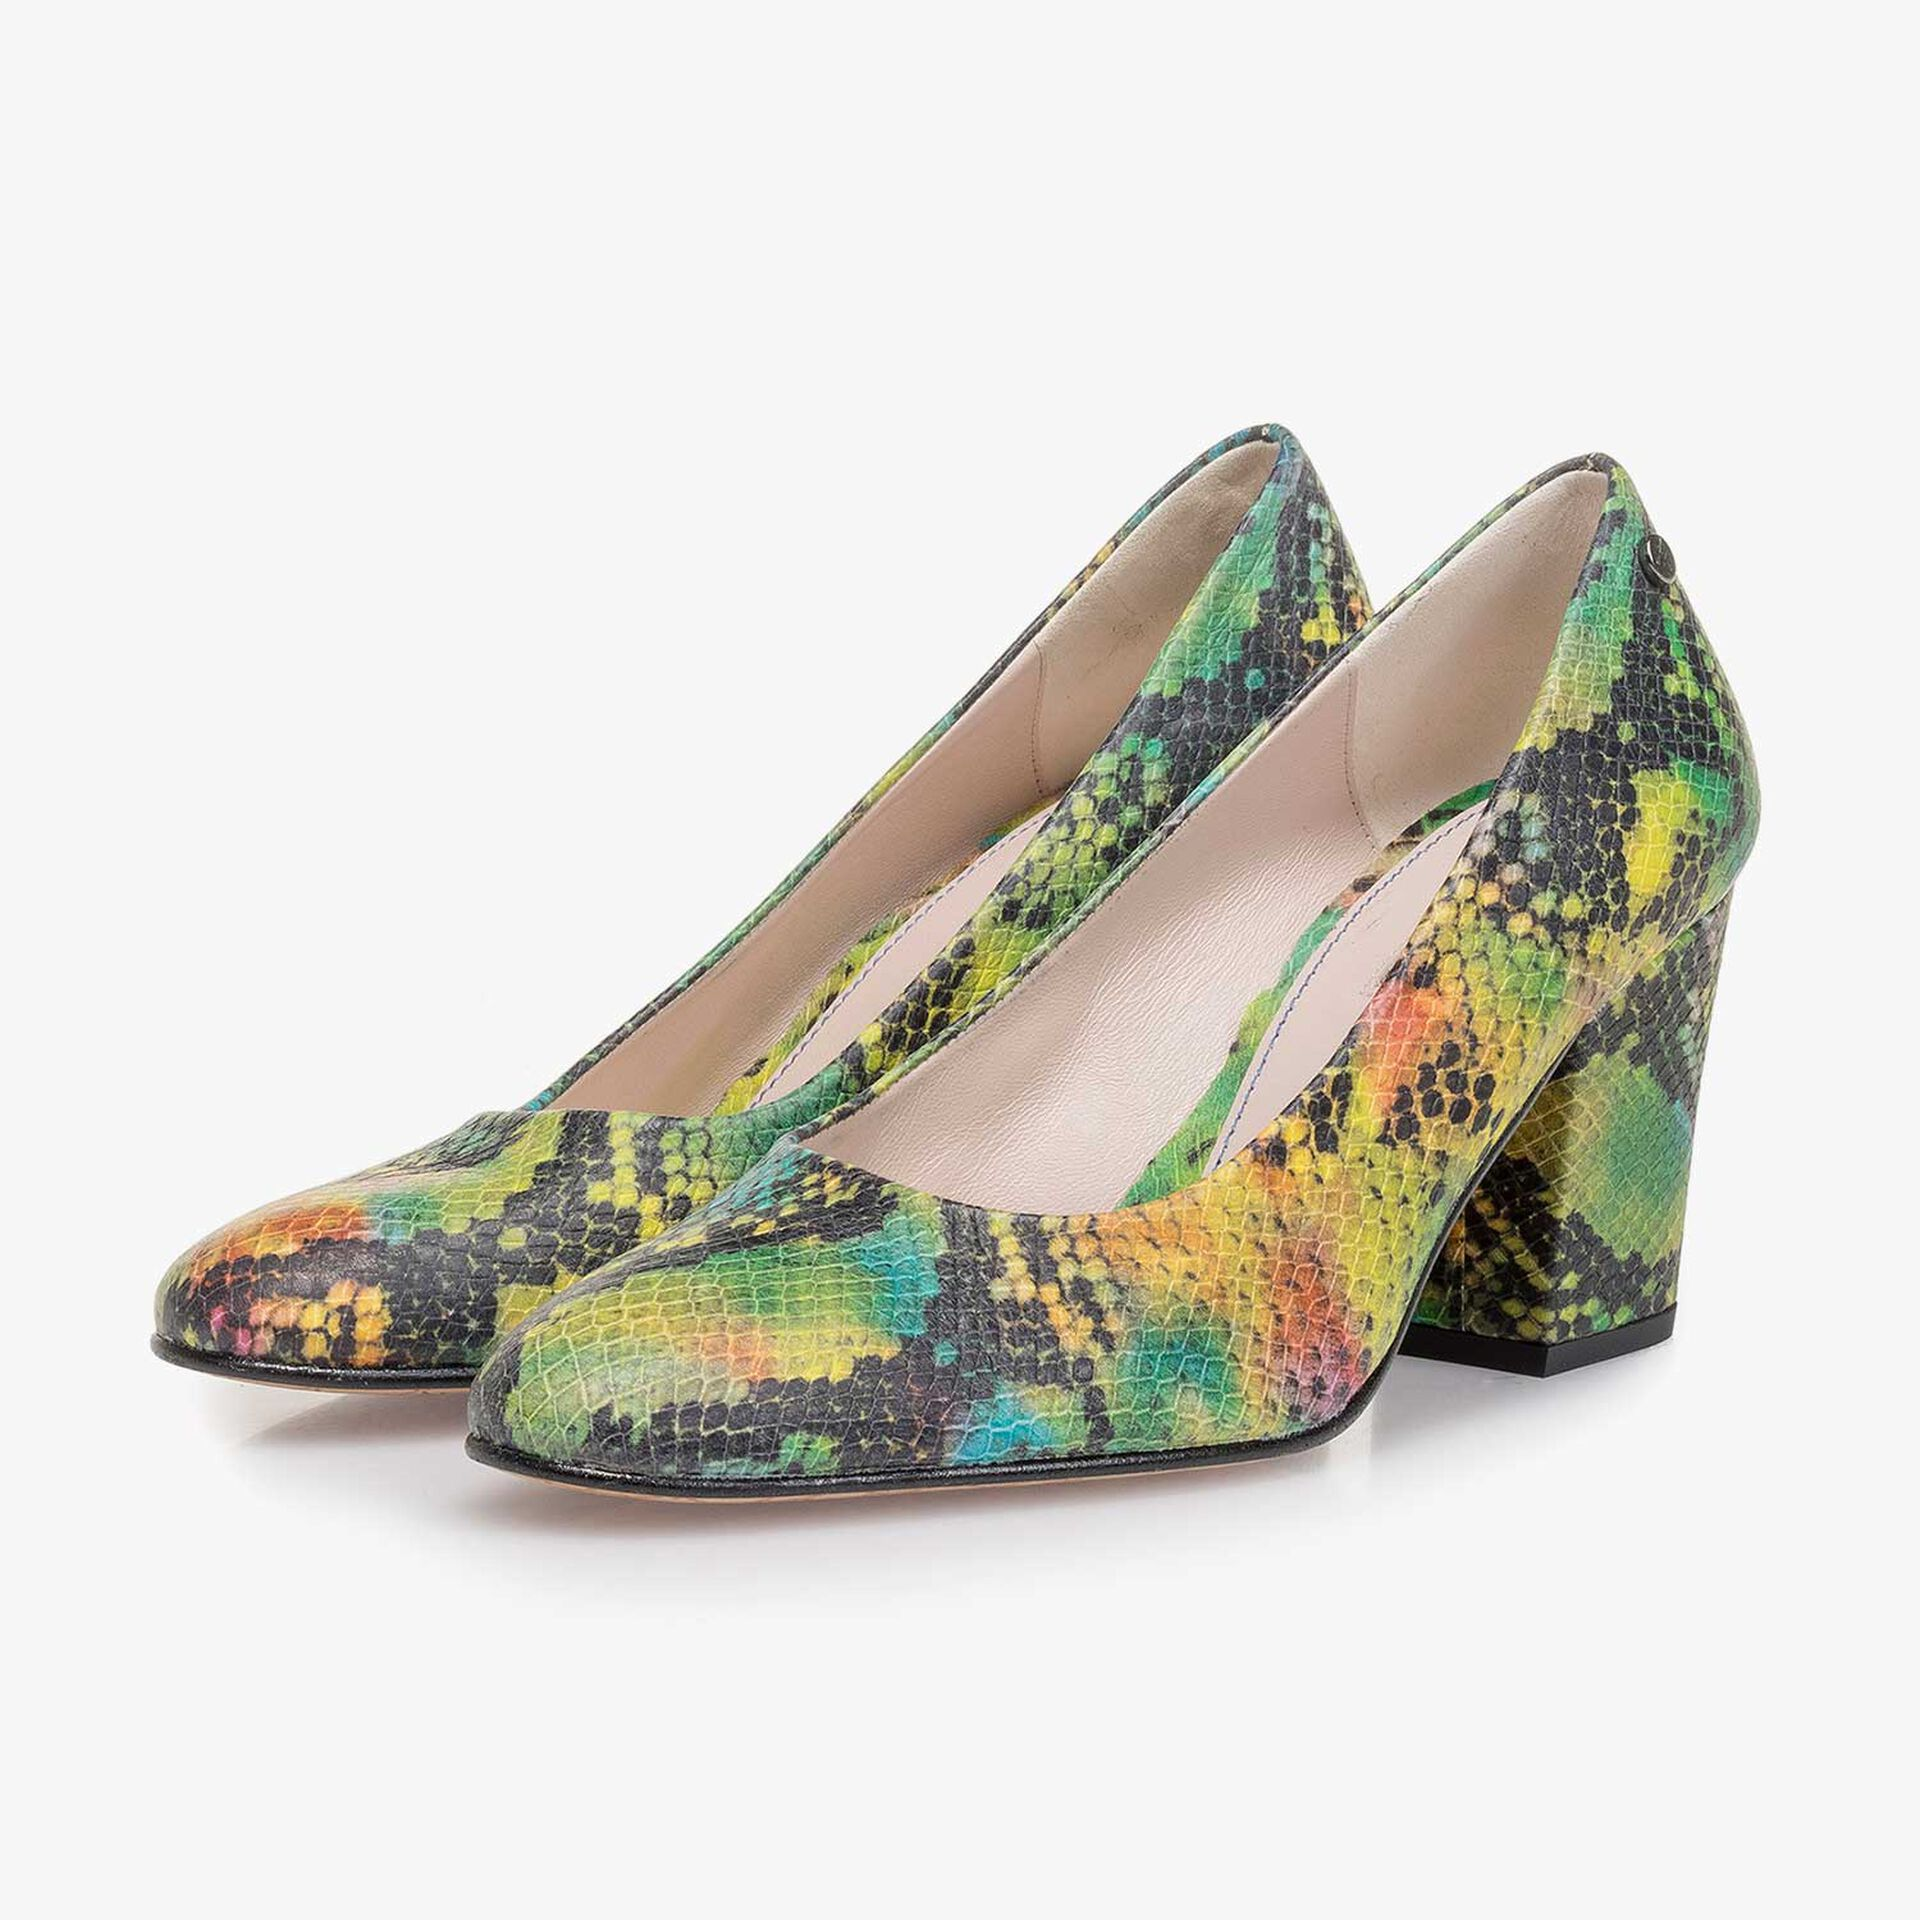 Green snake print leather pumps